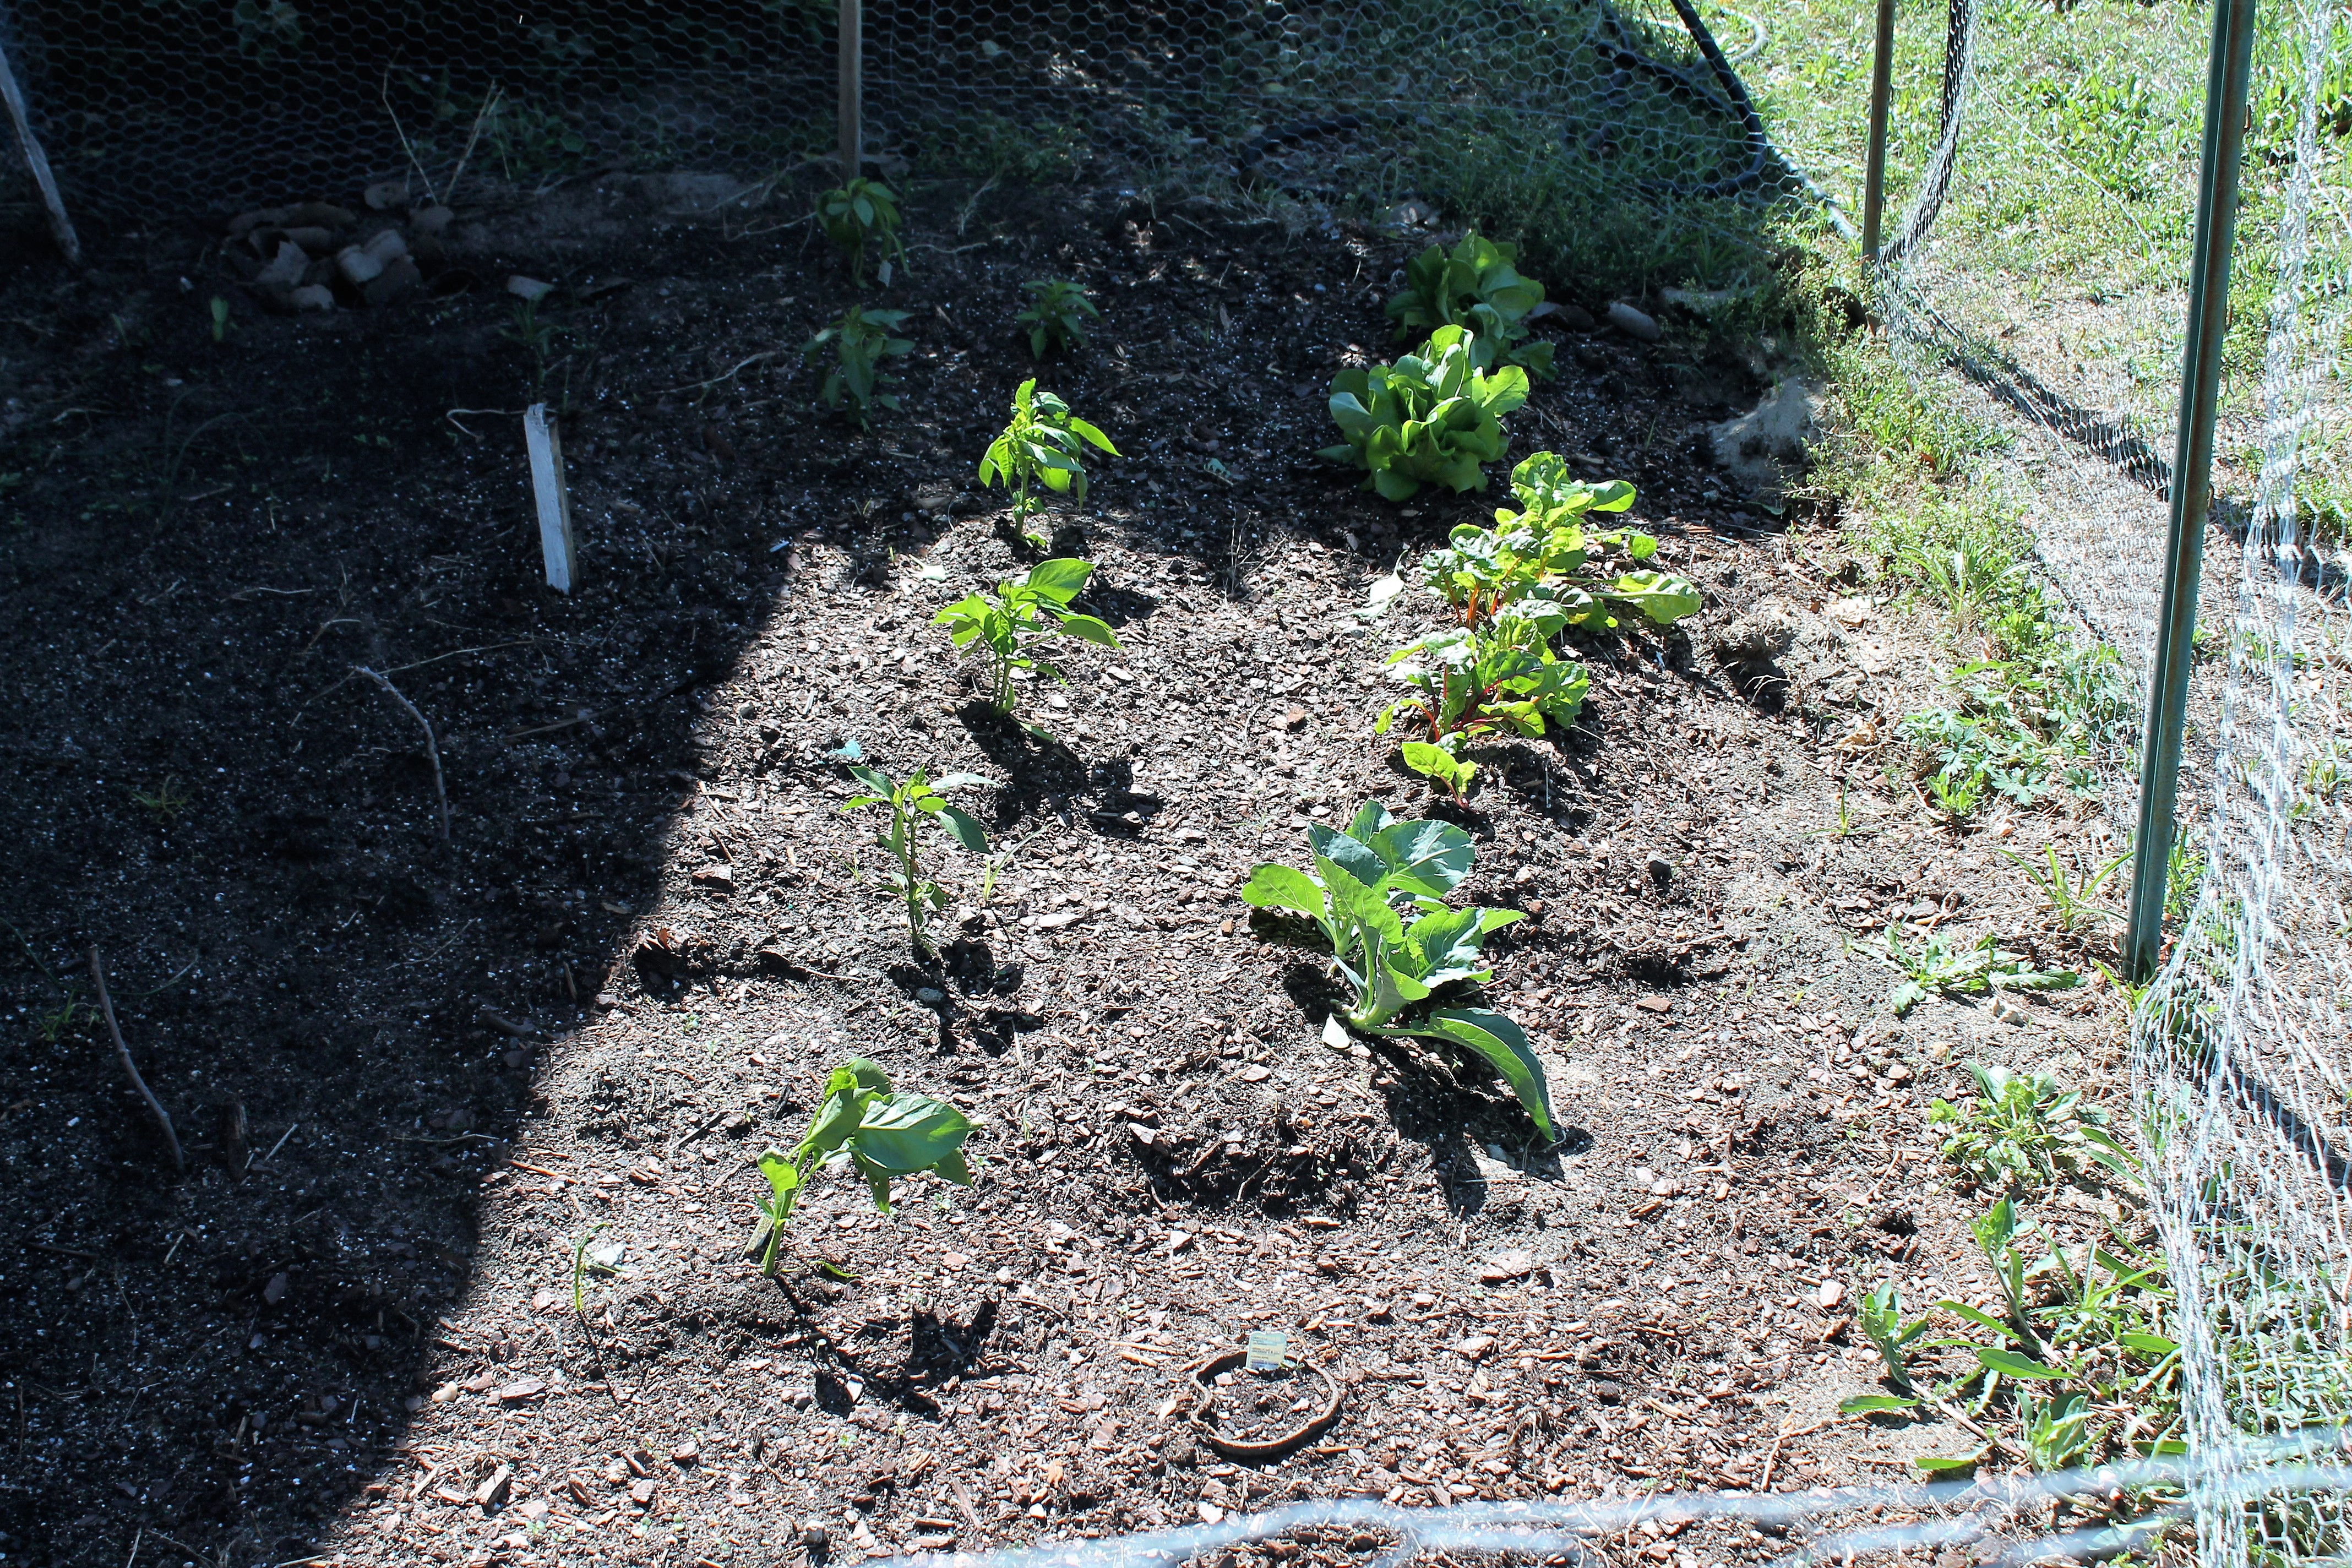 veg clippings long are soil yard grass gardening garden of crop from your vegetable cover a mulch with you ccesuffolkligardening and cce adding shredded my damaging leaves megs reduced has rototilling suffolk